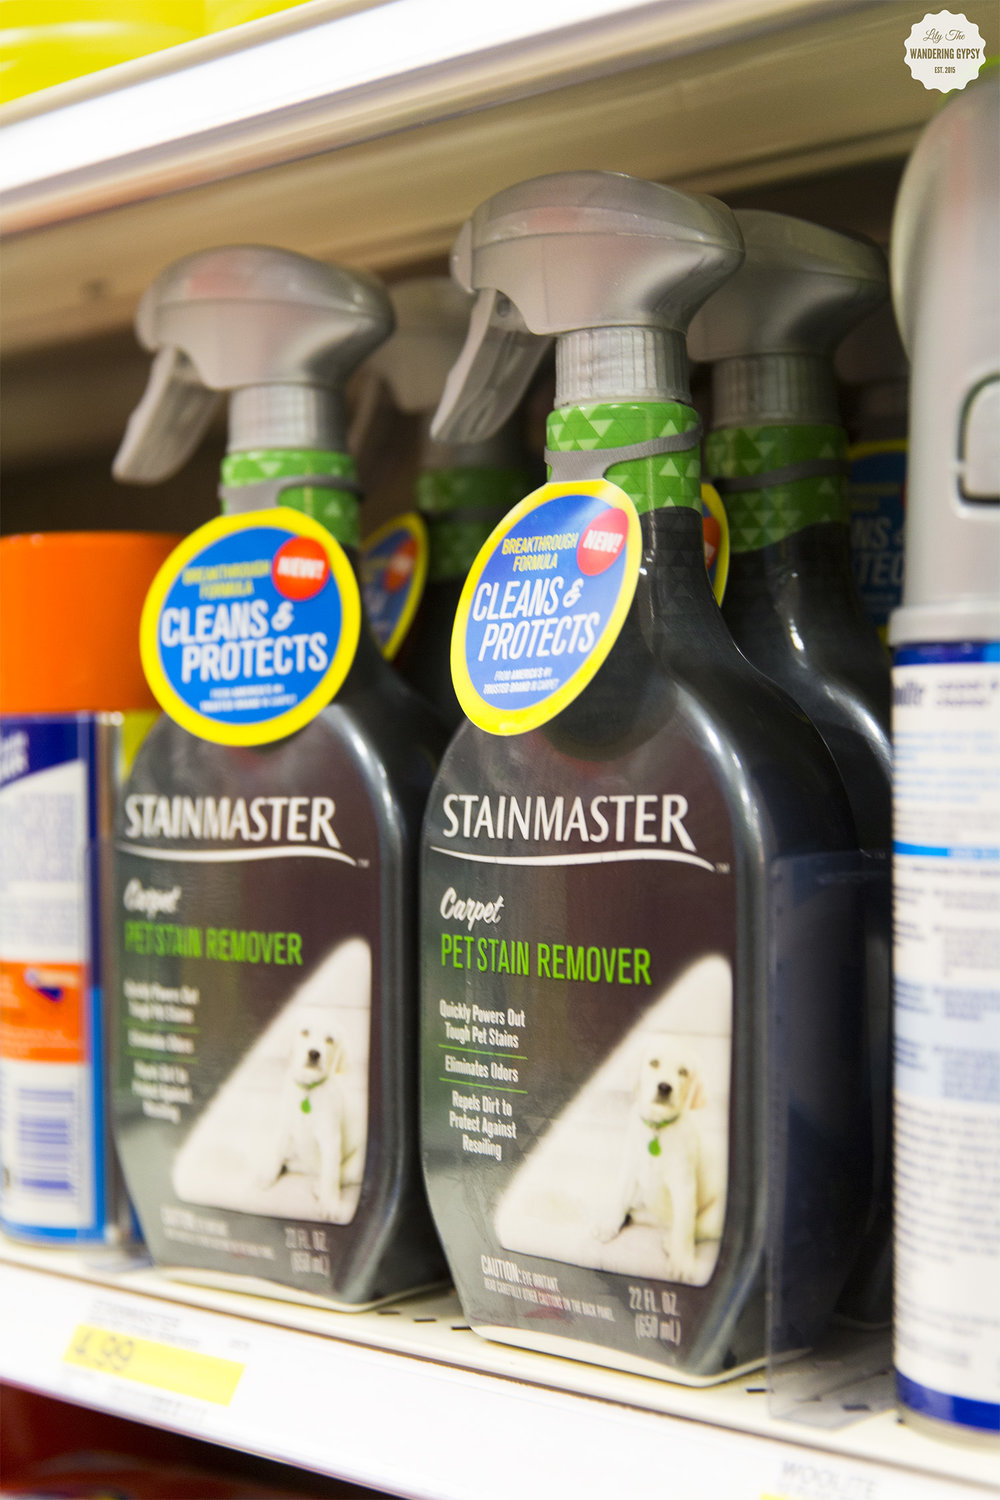 STAINMASTER™ Carpet Pet Stain Remover at Target